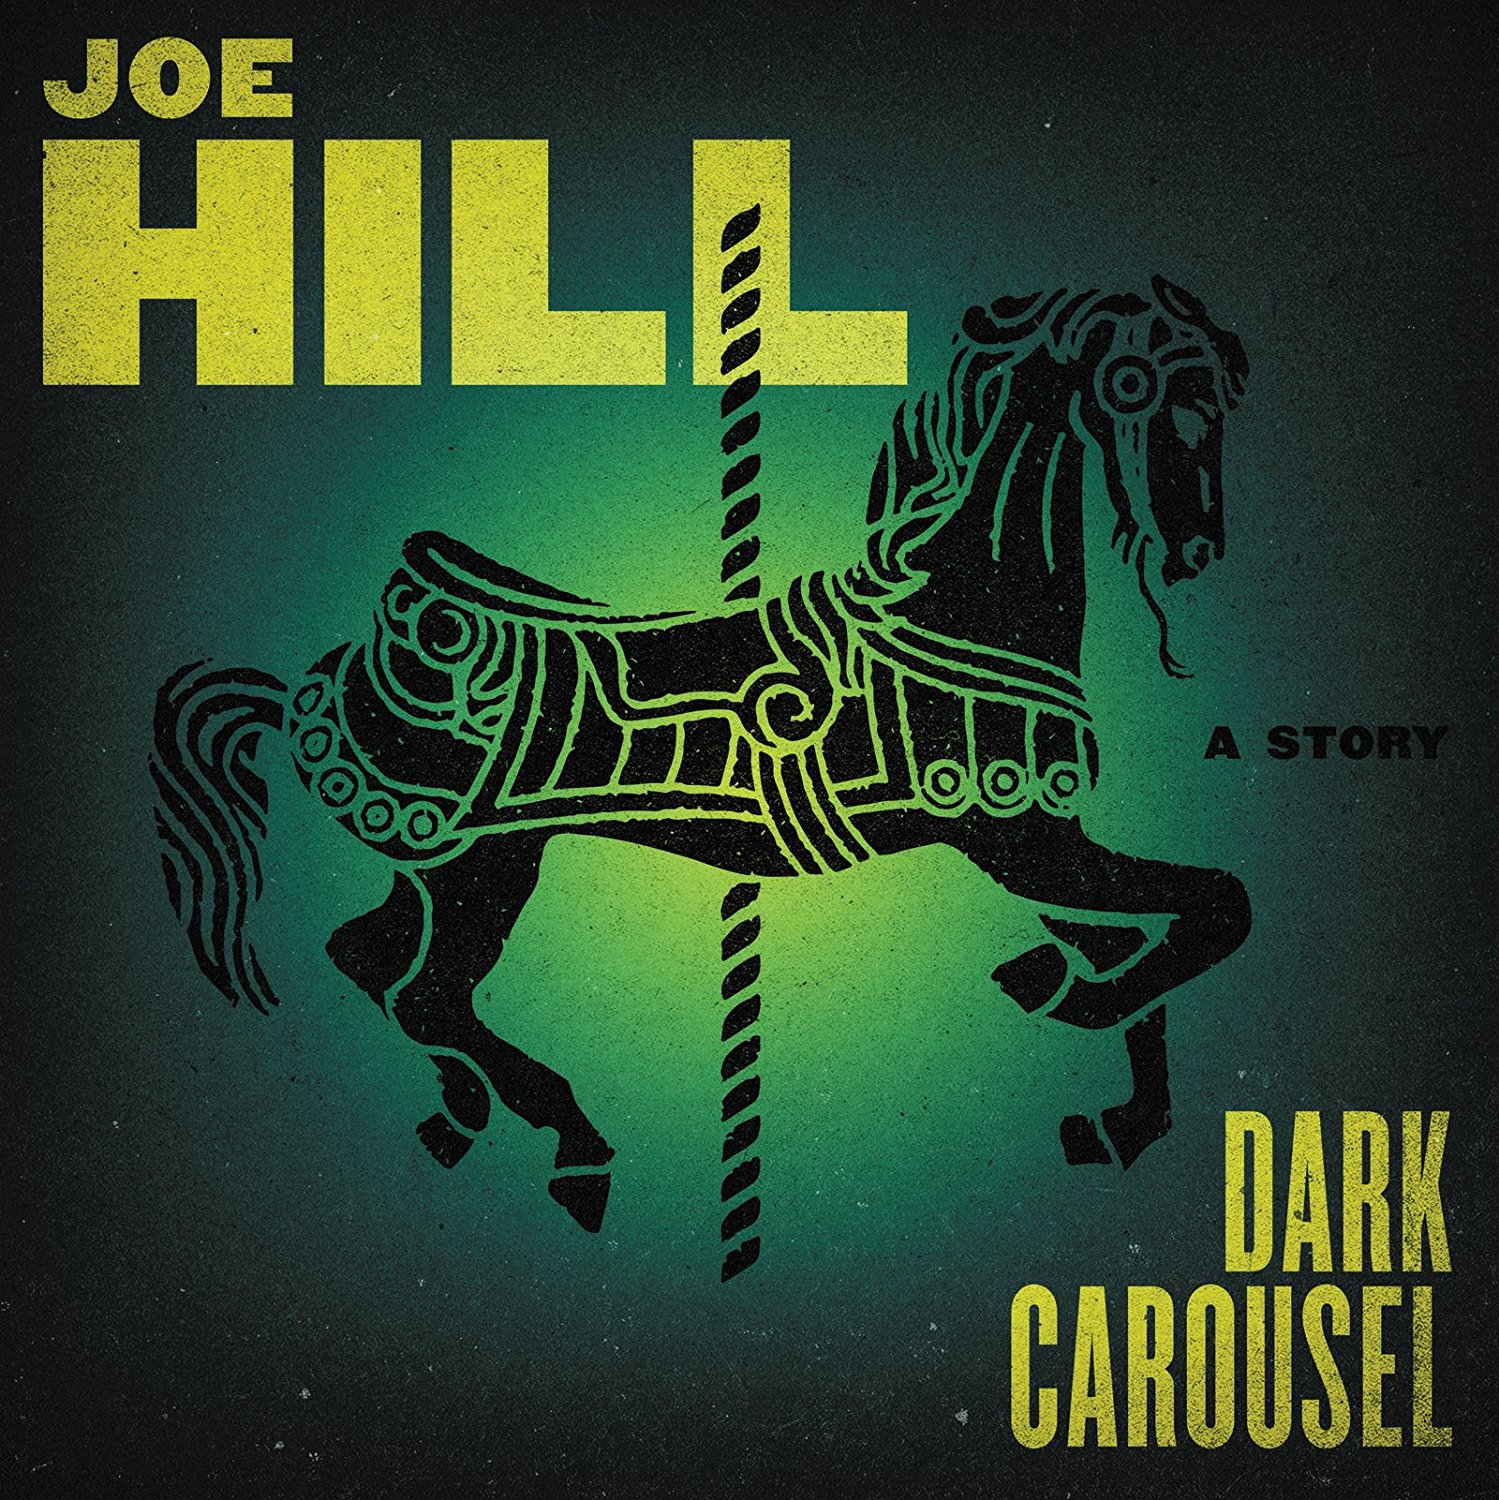 Joe Hill - Dark Carousel [LP]